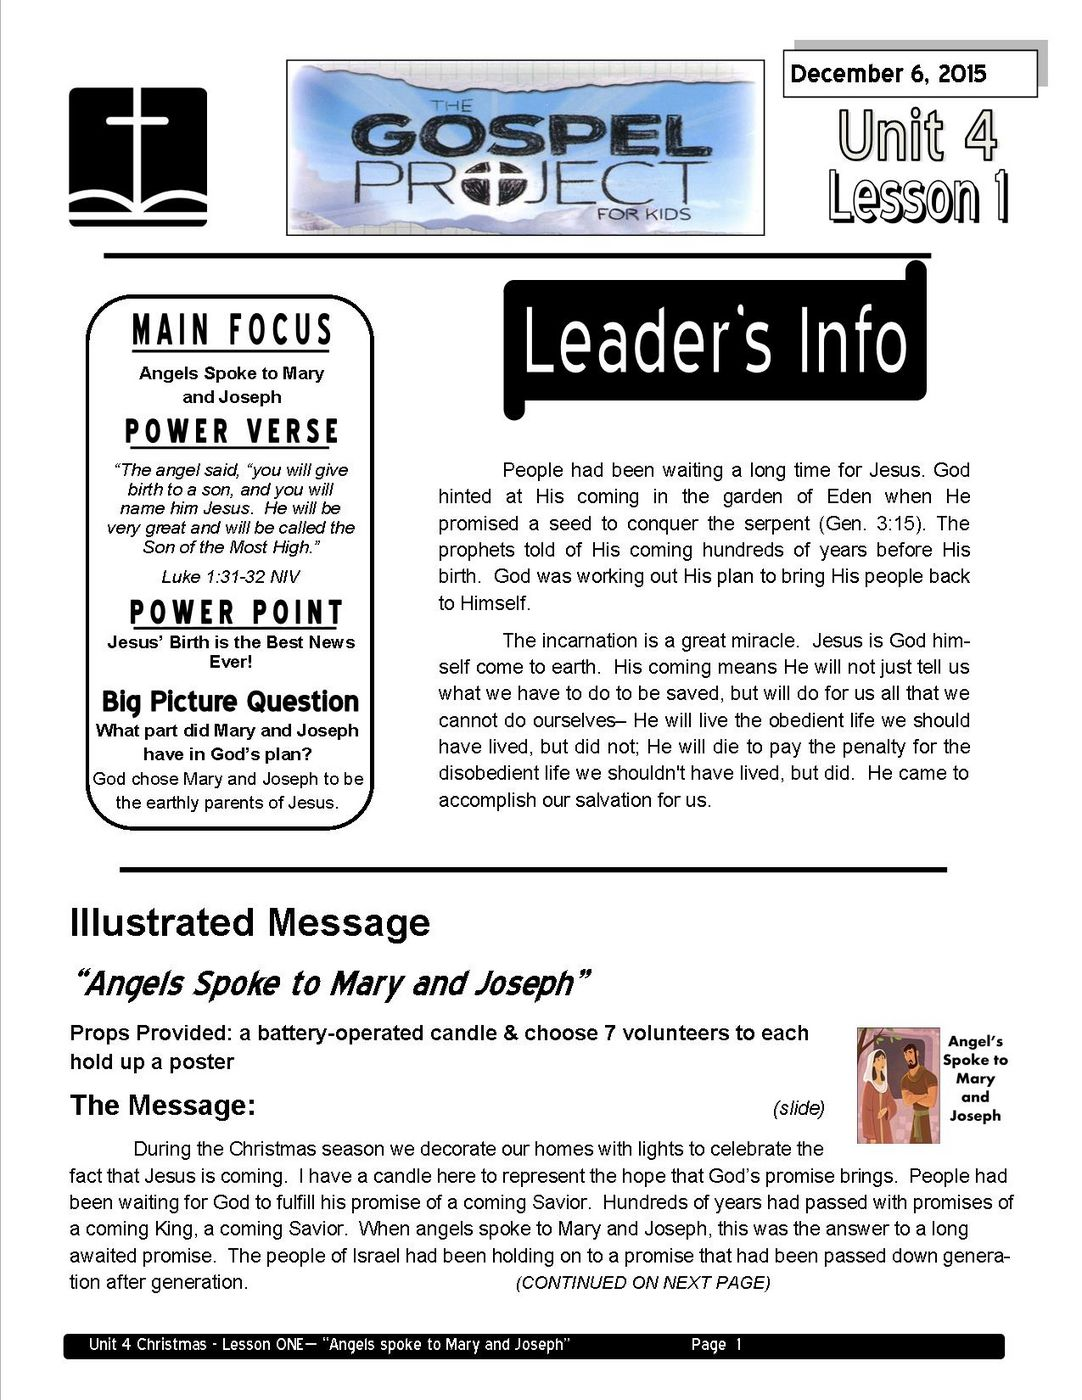 Lead teacher L1 - Angels Spoke to Mary and Joseph page 1